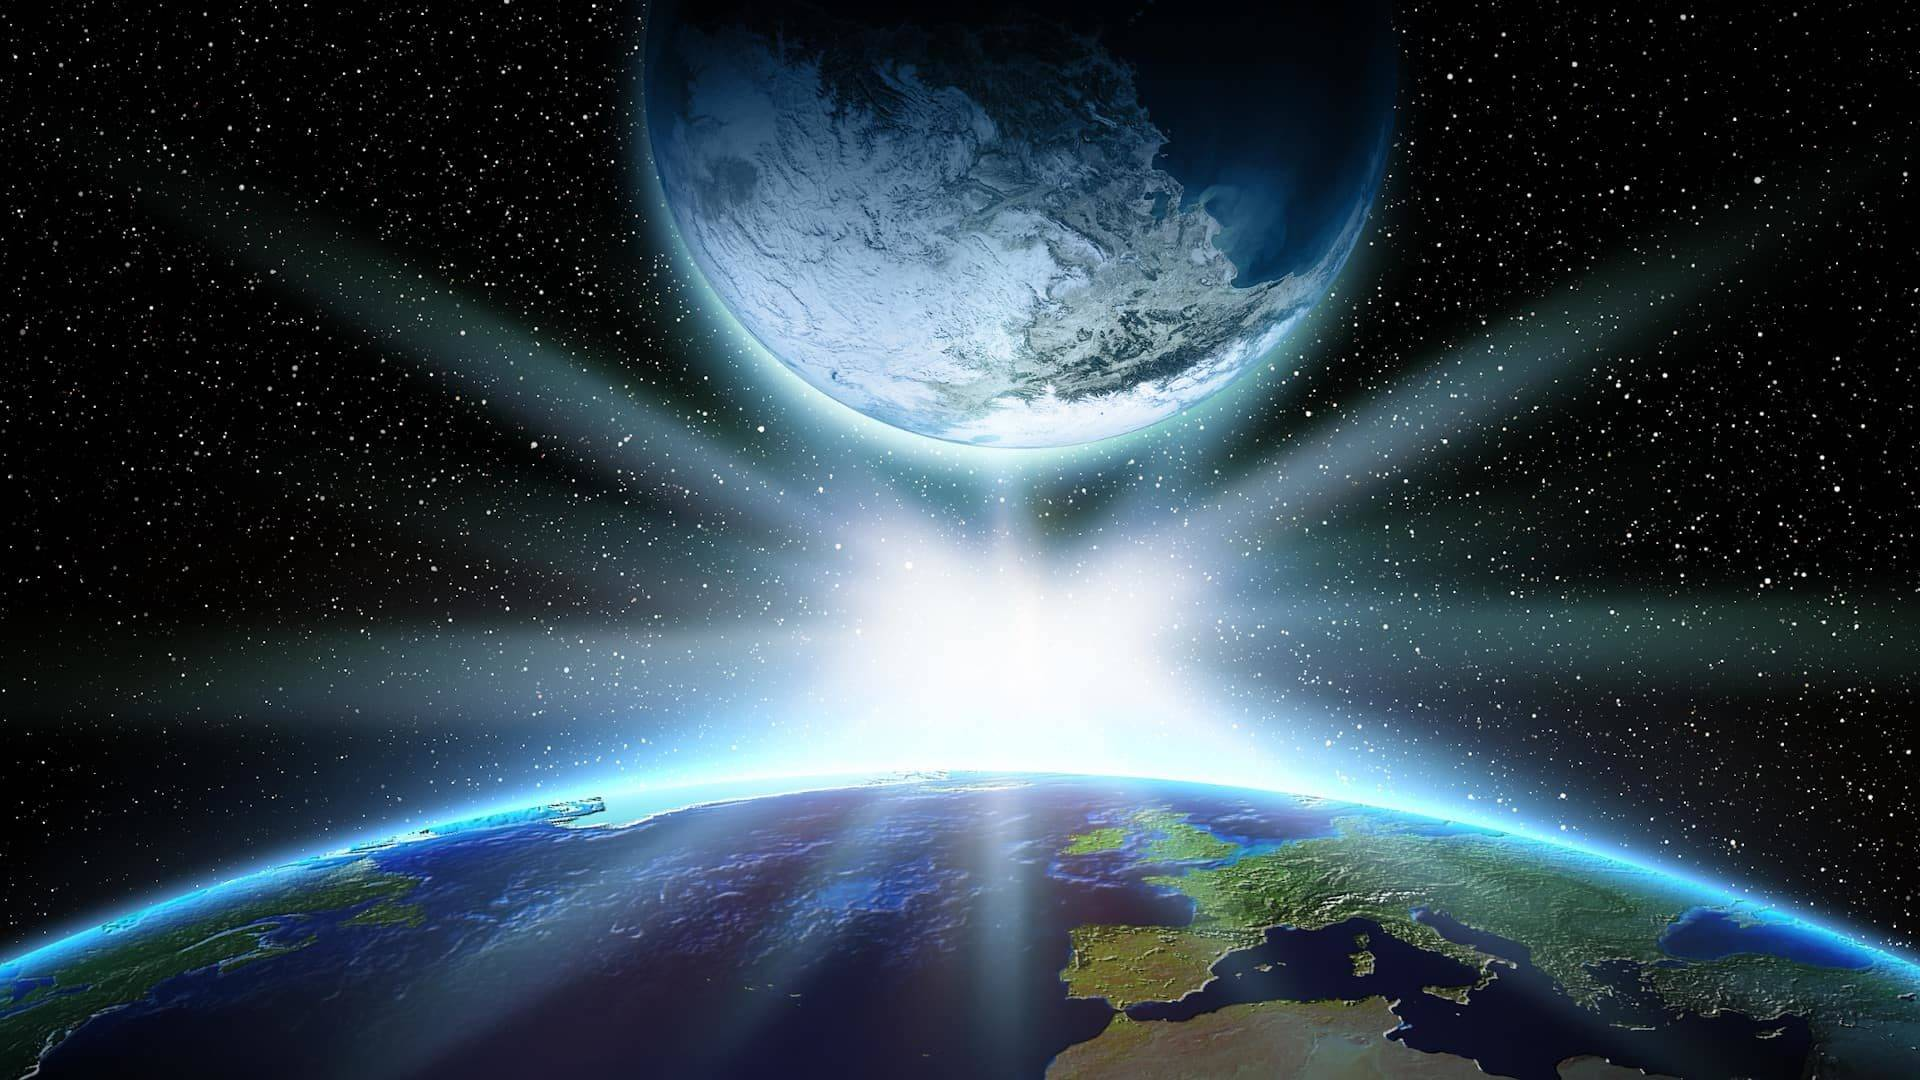 What If the Moon Fell To Earth?